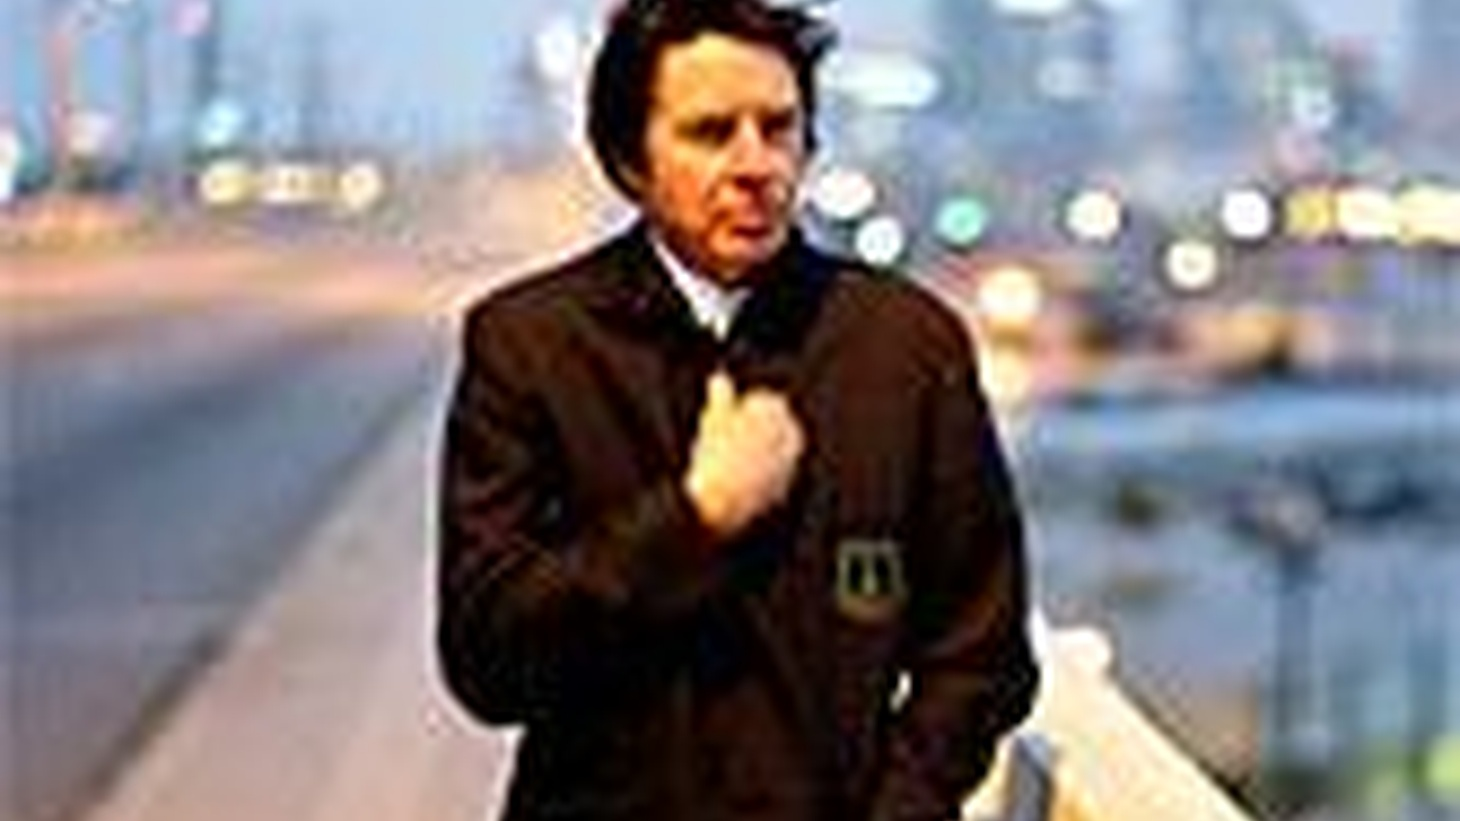 John Doe, founding member of X and acclaimed singer-songwriter, will be guest dj on The Open Road, this Sunday July 1 from 11pm - Midnight.